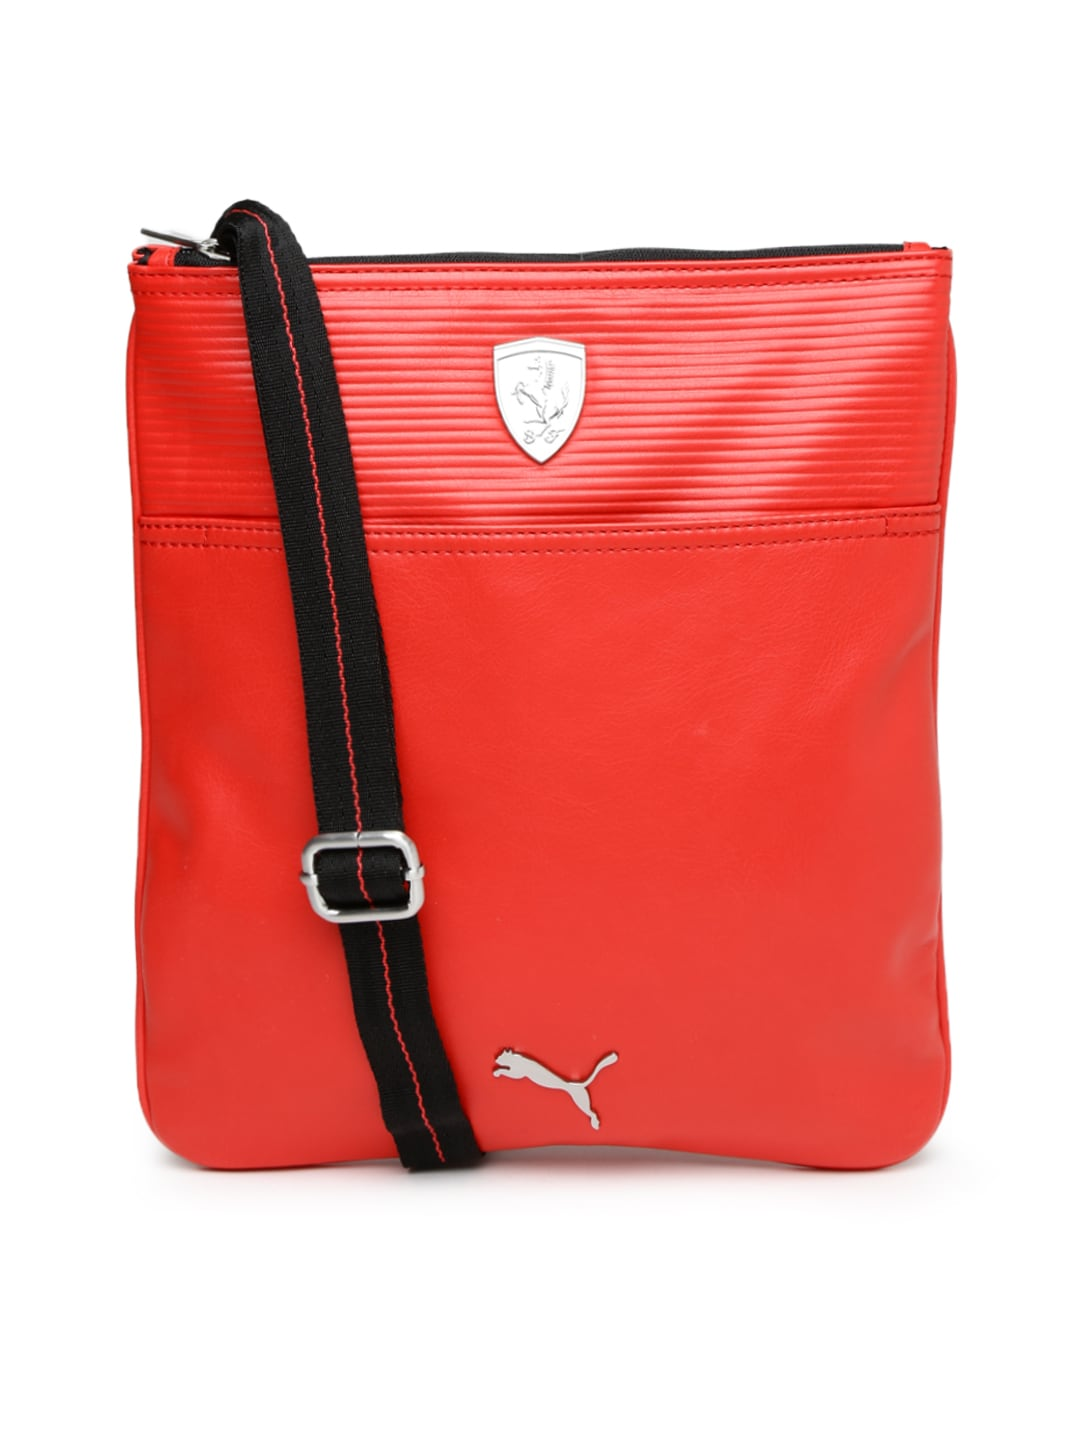 puma ferrari shoulder bag cheap   OFF71% Discounted 6494aef8175ab